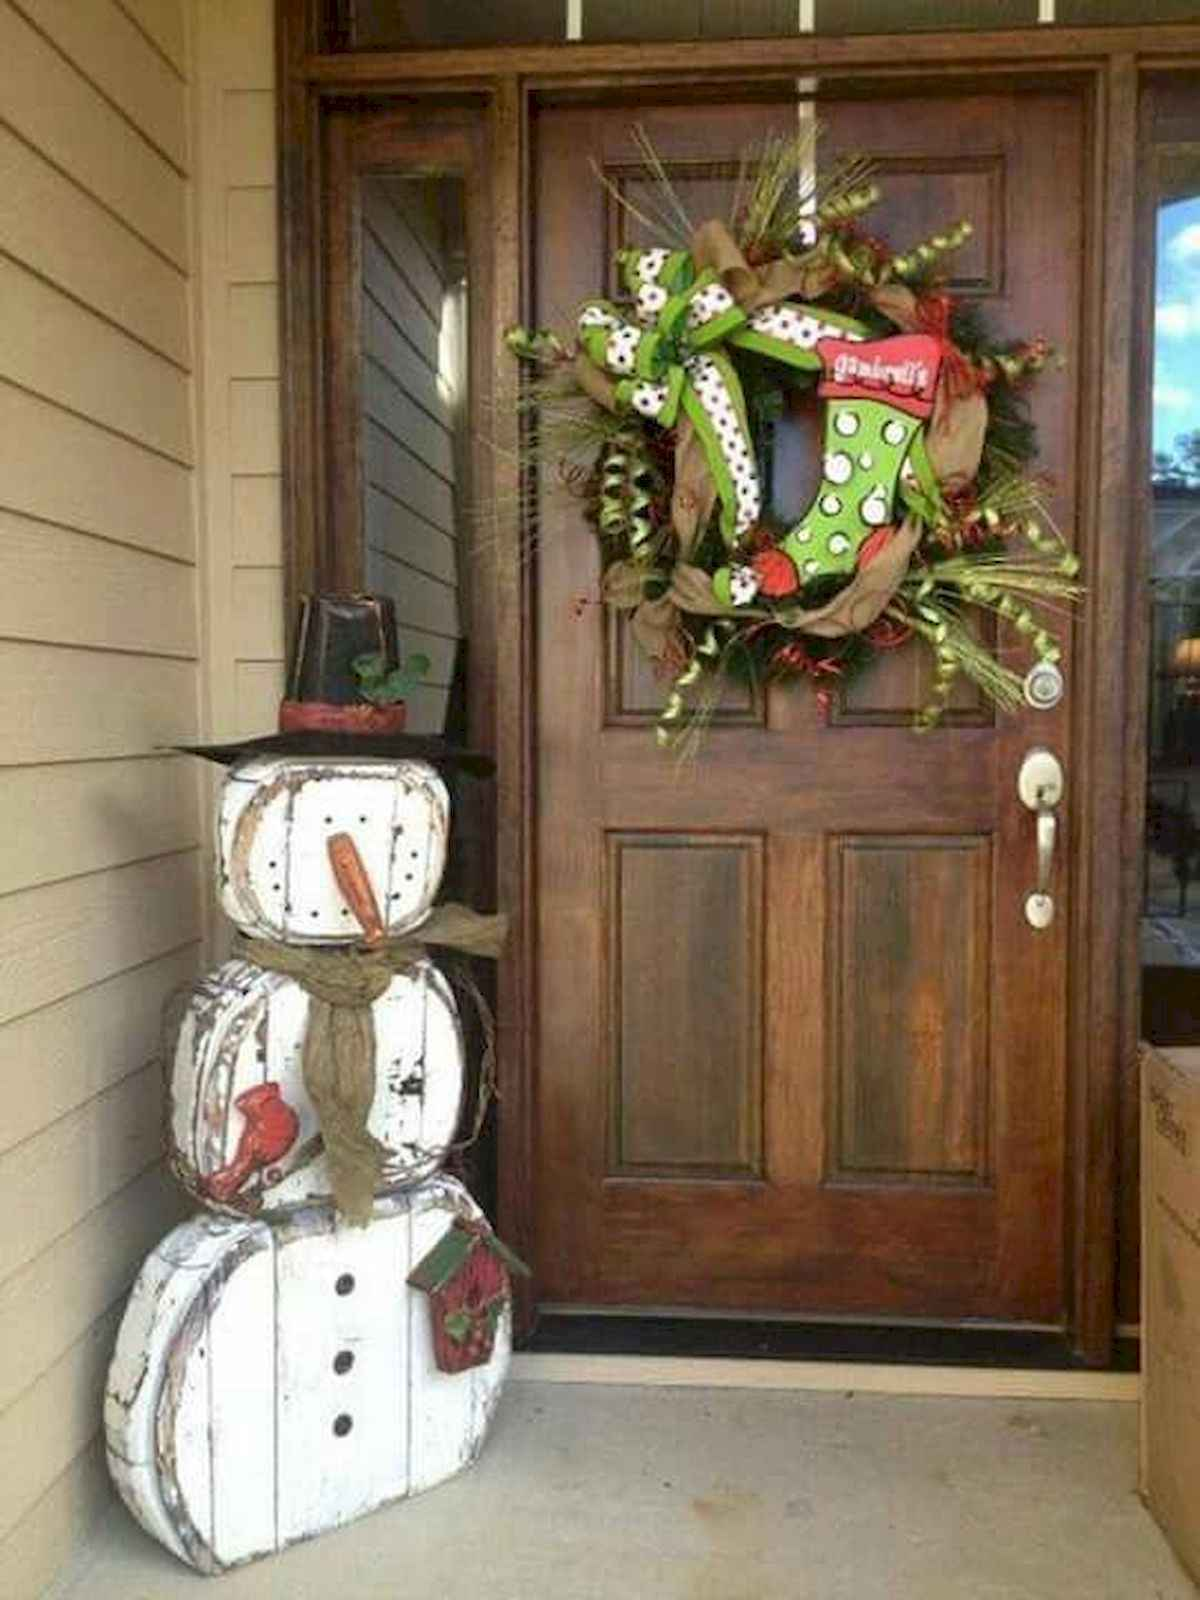 50 stunning front porch christmas lights decorations ideas (17)